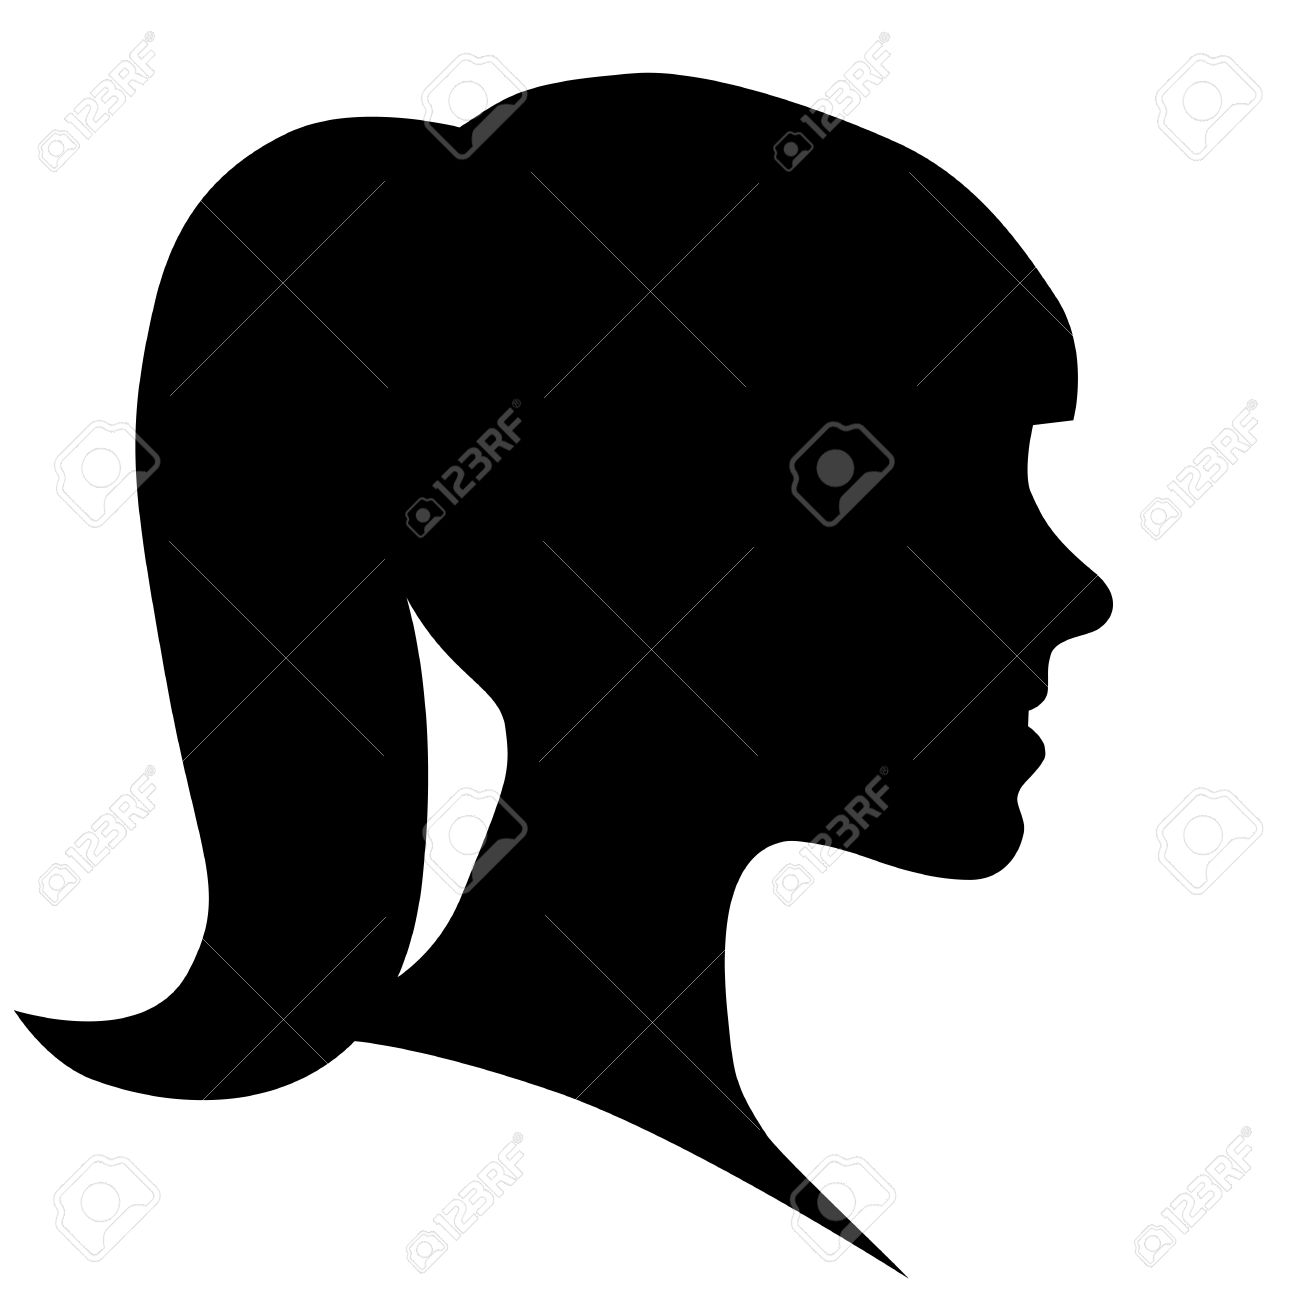 woman face silhouette in profile royalty free cliparts vectors and rh 123rf com woman face silhouette vector girl face silhouette vector